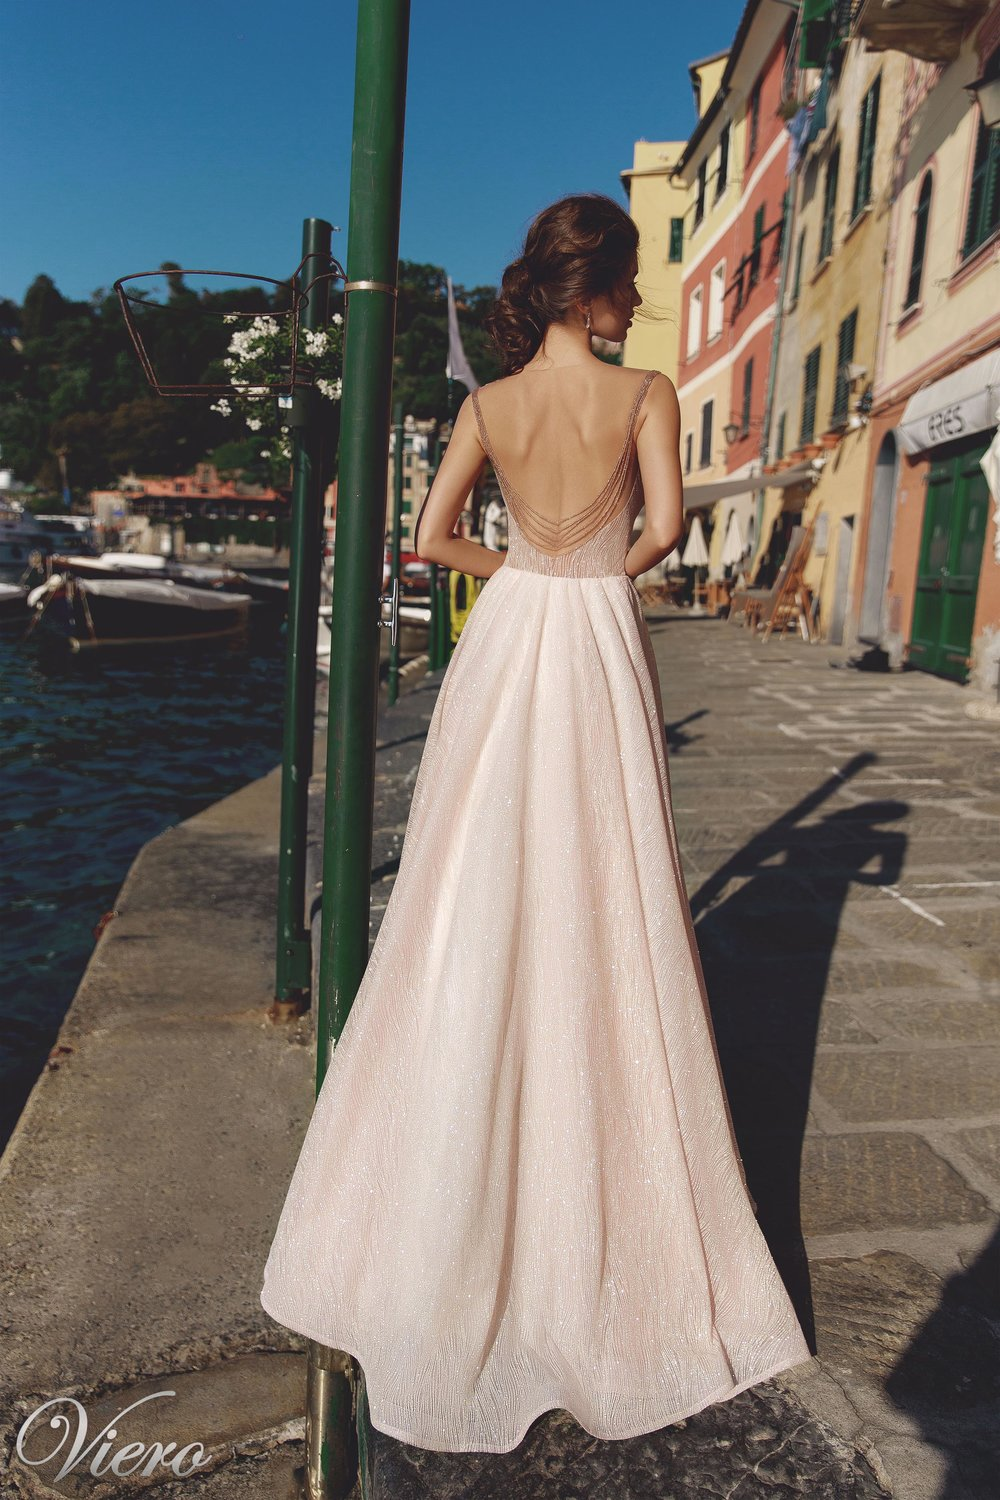 La Dolce Vita Collection — Viero Bridal